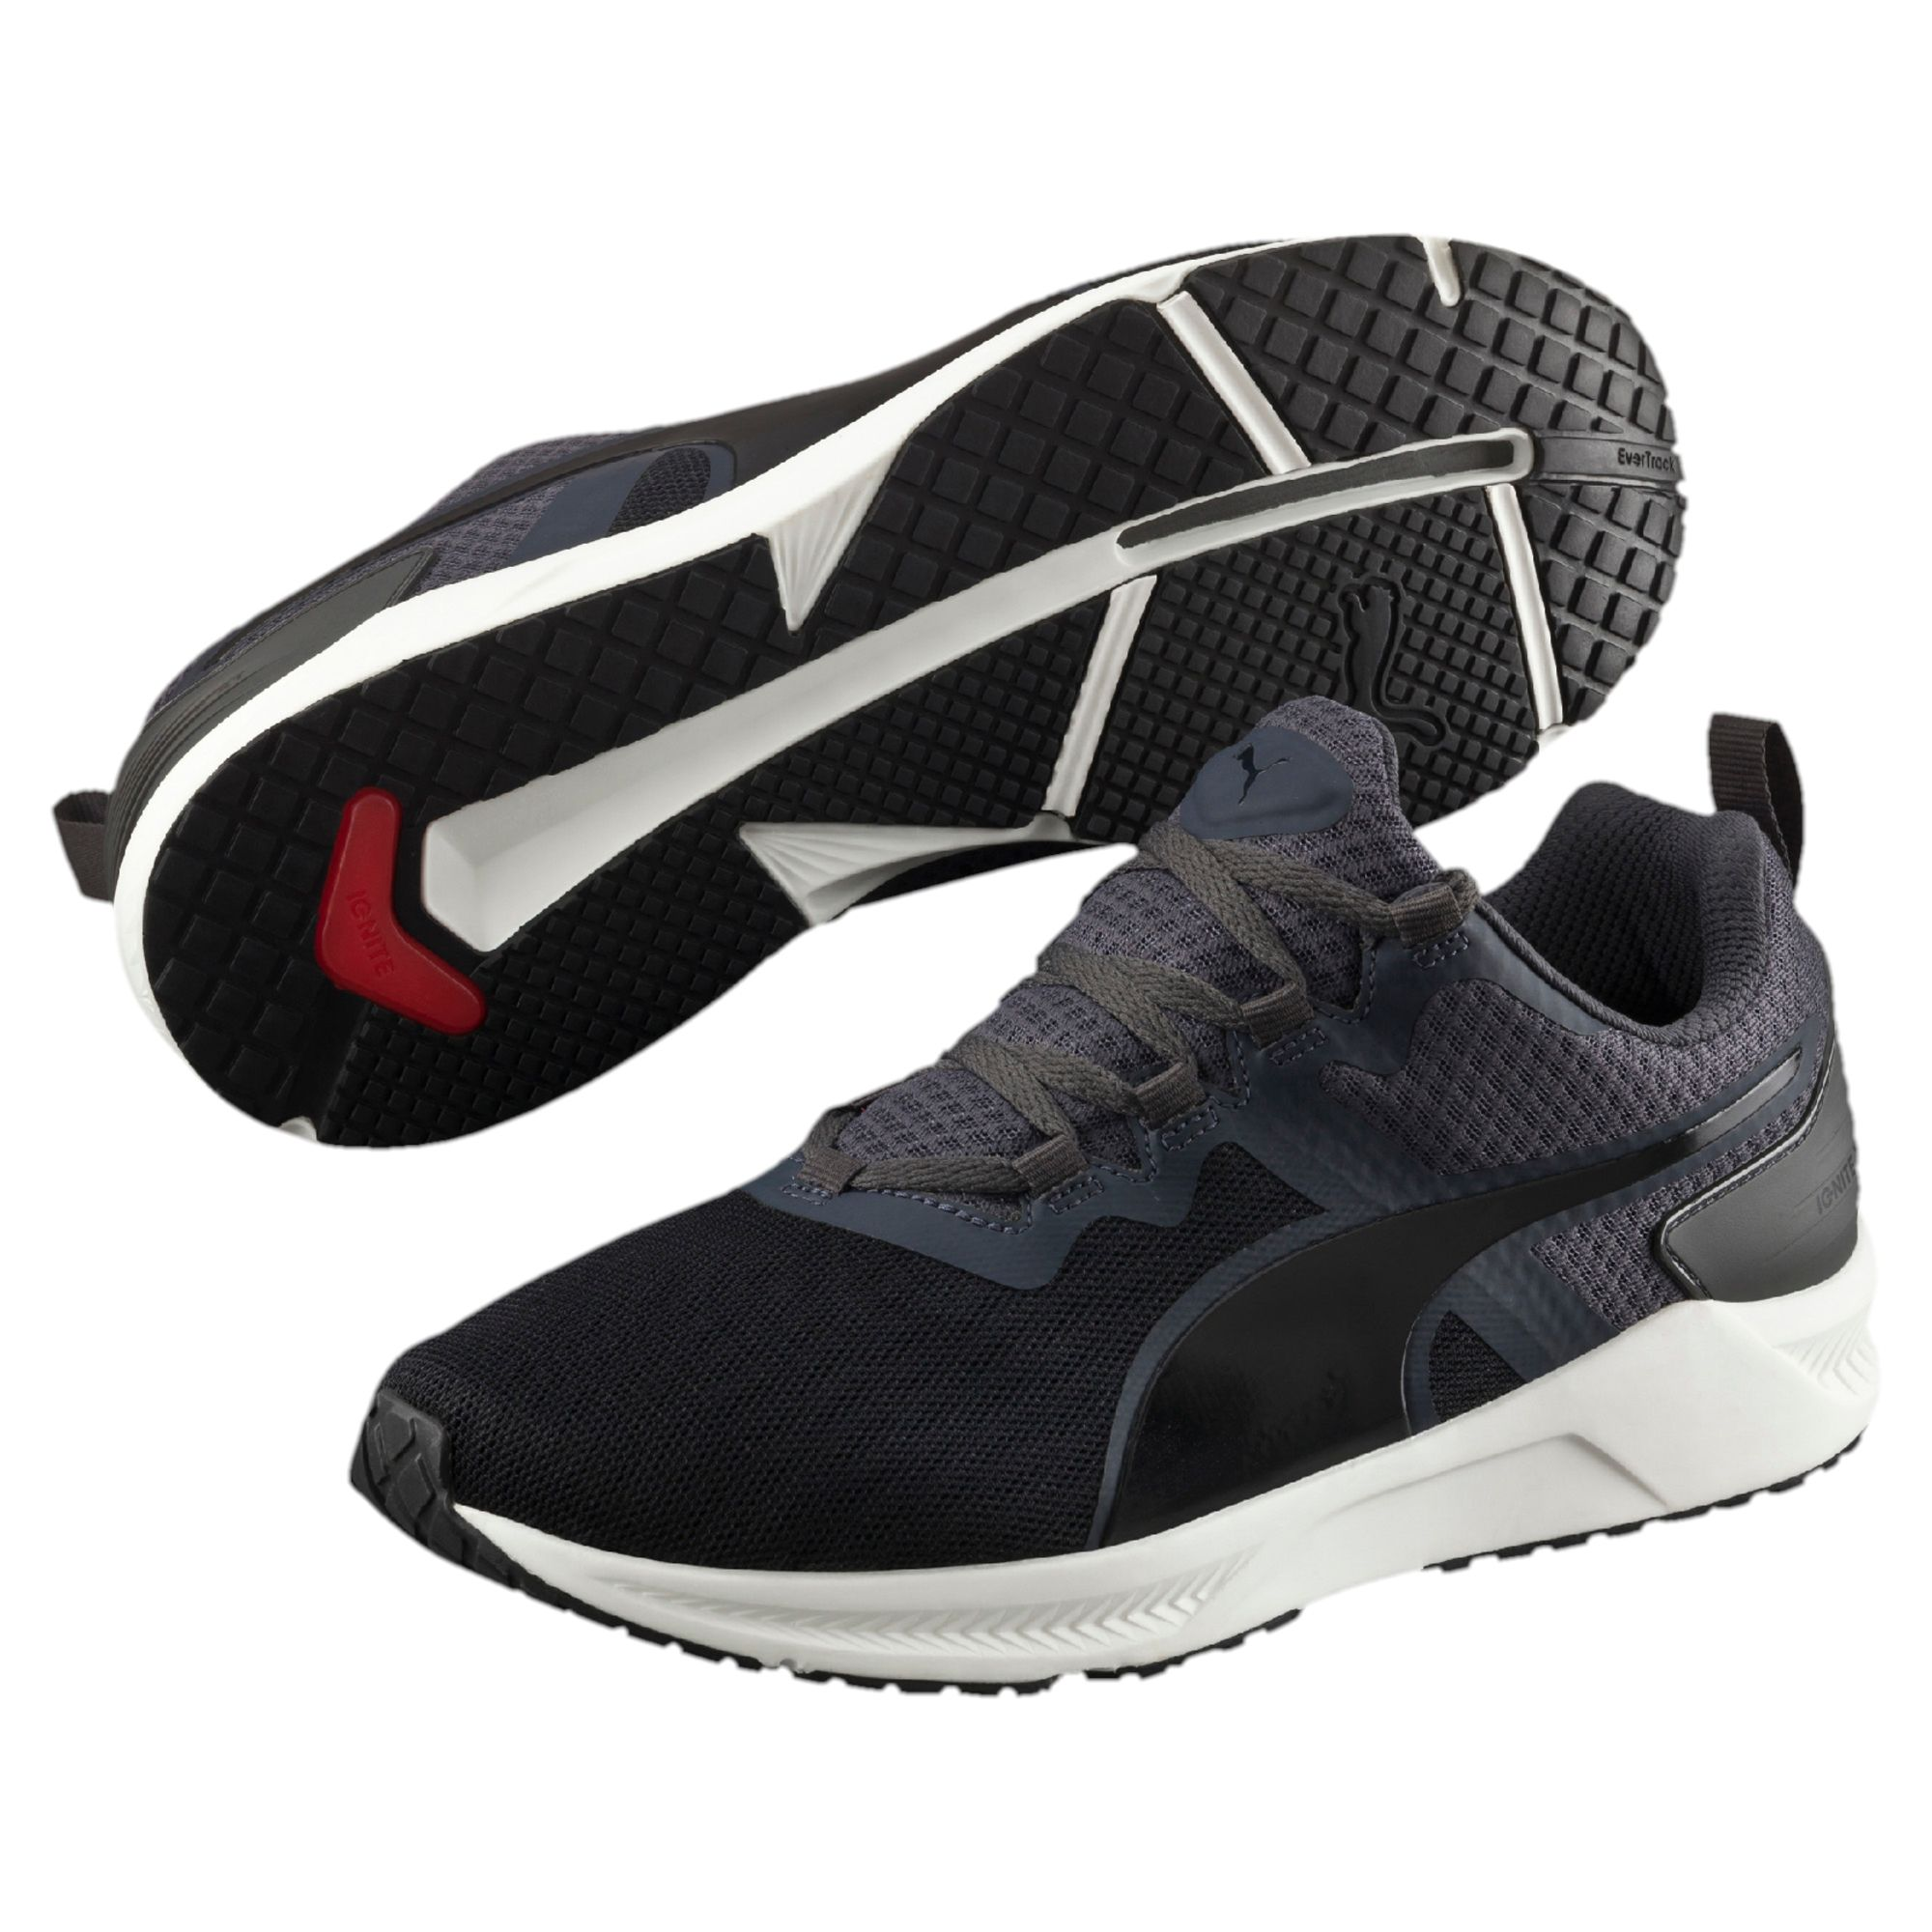 PUMA-IGNITE-XT-v2-Men-s-Training-Shoes-